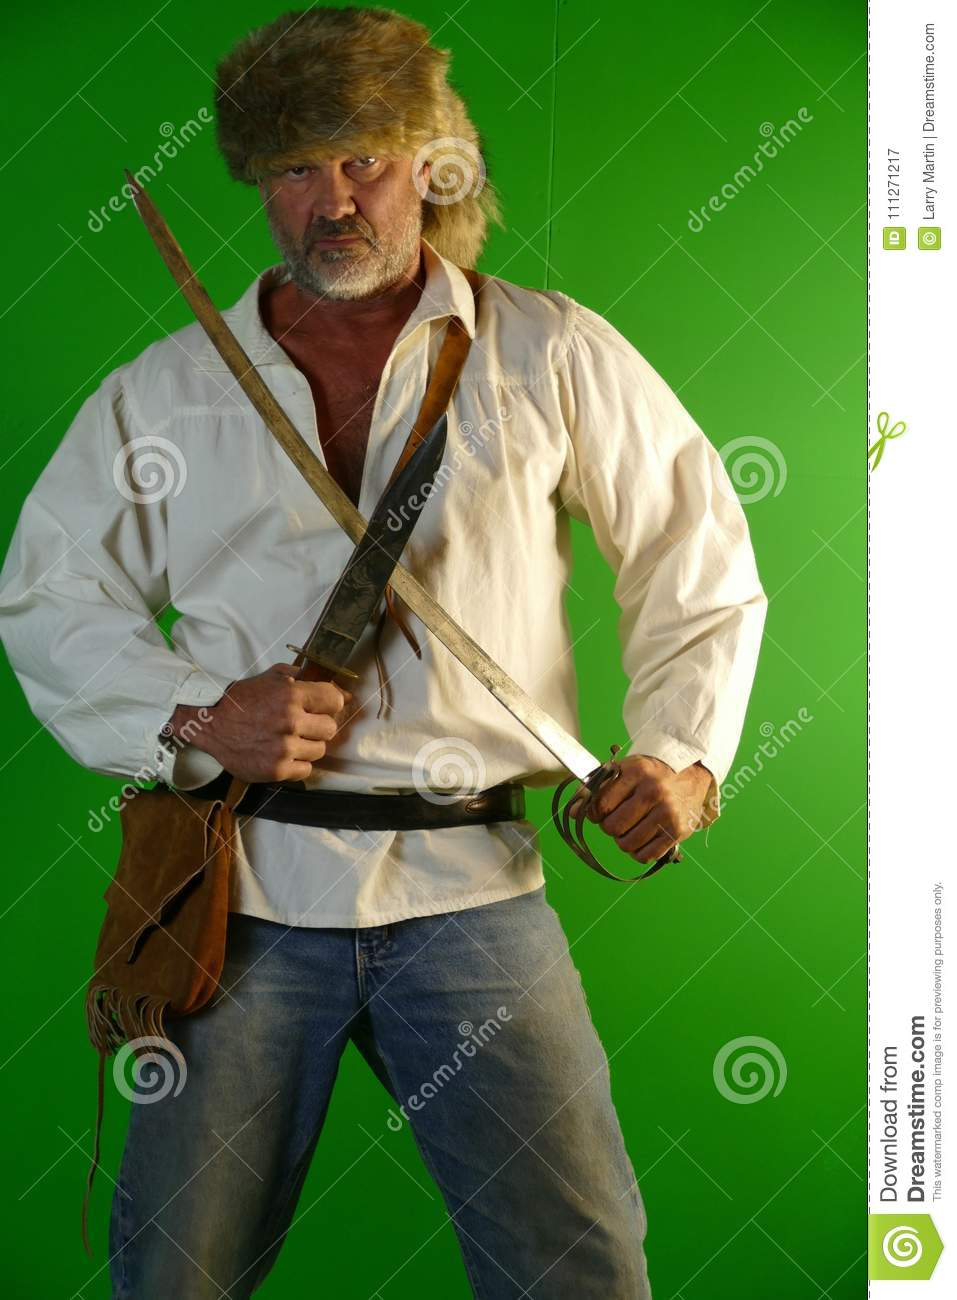 Mountain Man With Saber And Knife Stock Image - Image of